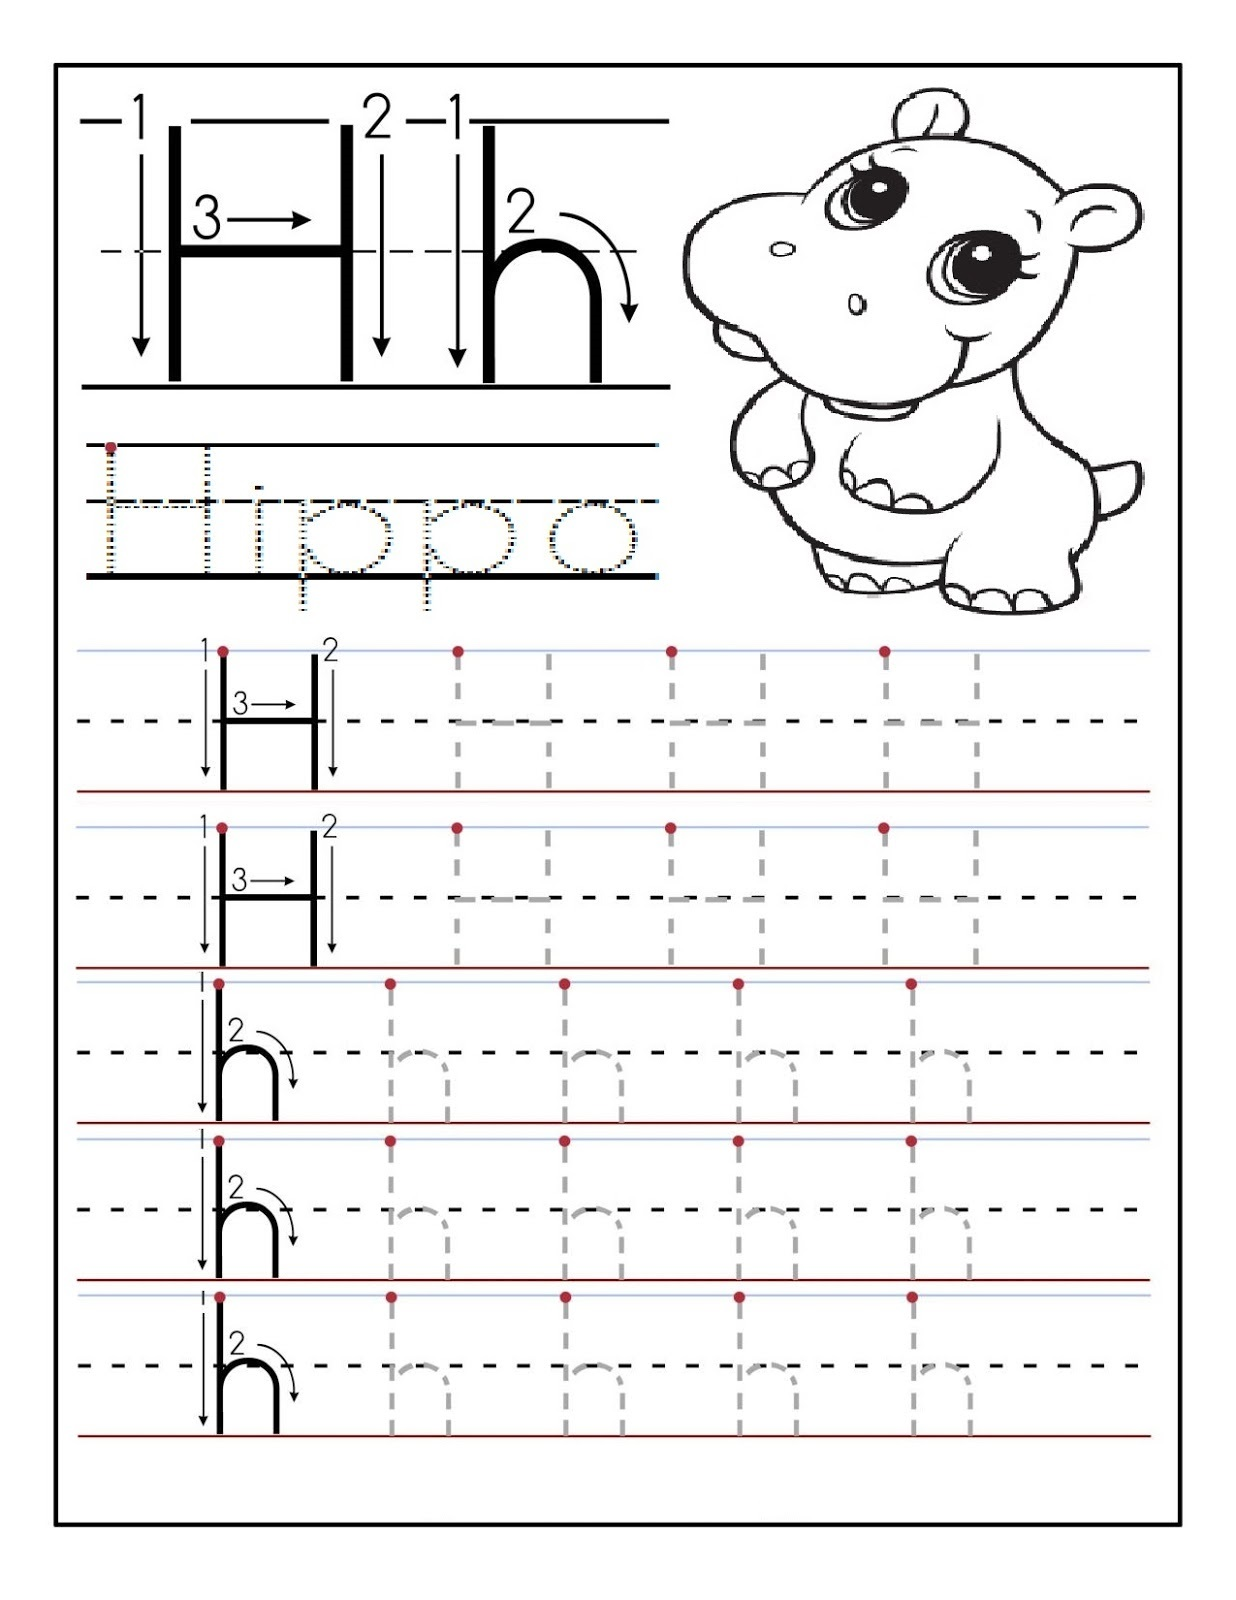 Printables Letter H Worksheets letter h worksheets for kindergarten due to preschool crafts